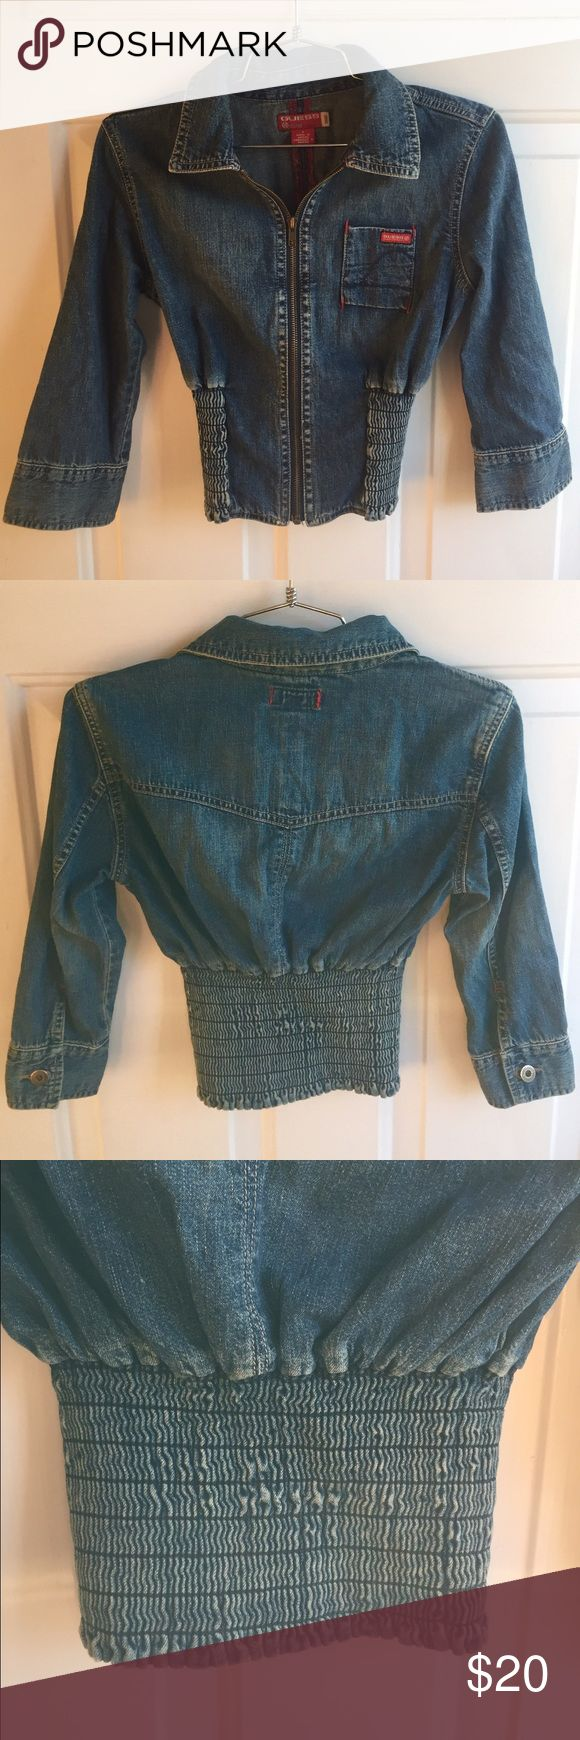 Guess Denim Jacket Light weight denim zip up jacket. 3/4 Sleeves with a ruched elastic waist. Worn but in great condition! Guess Jackets & Coats Jean Jackets